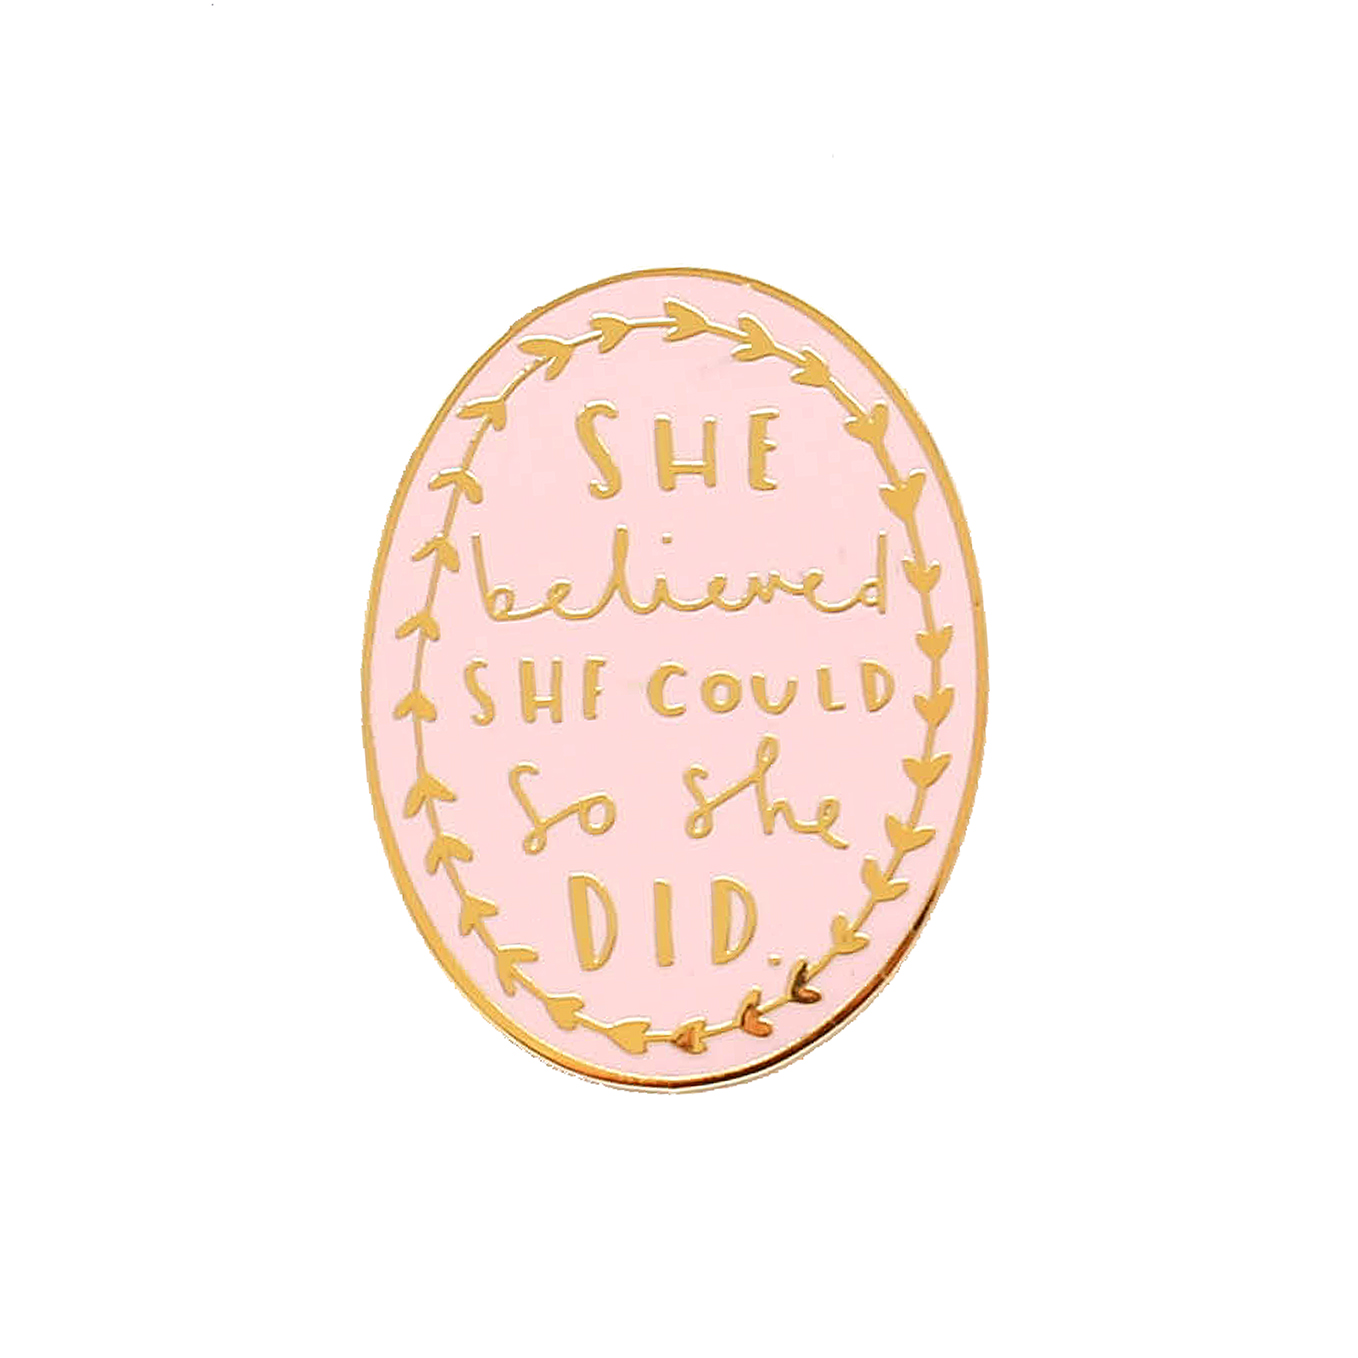 She Believed Pink Pin